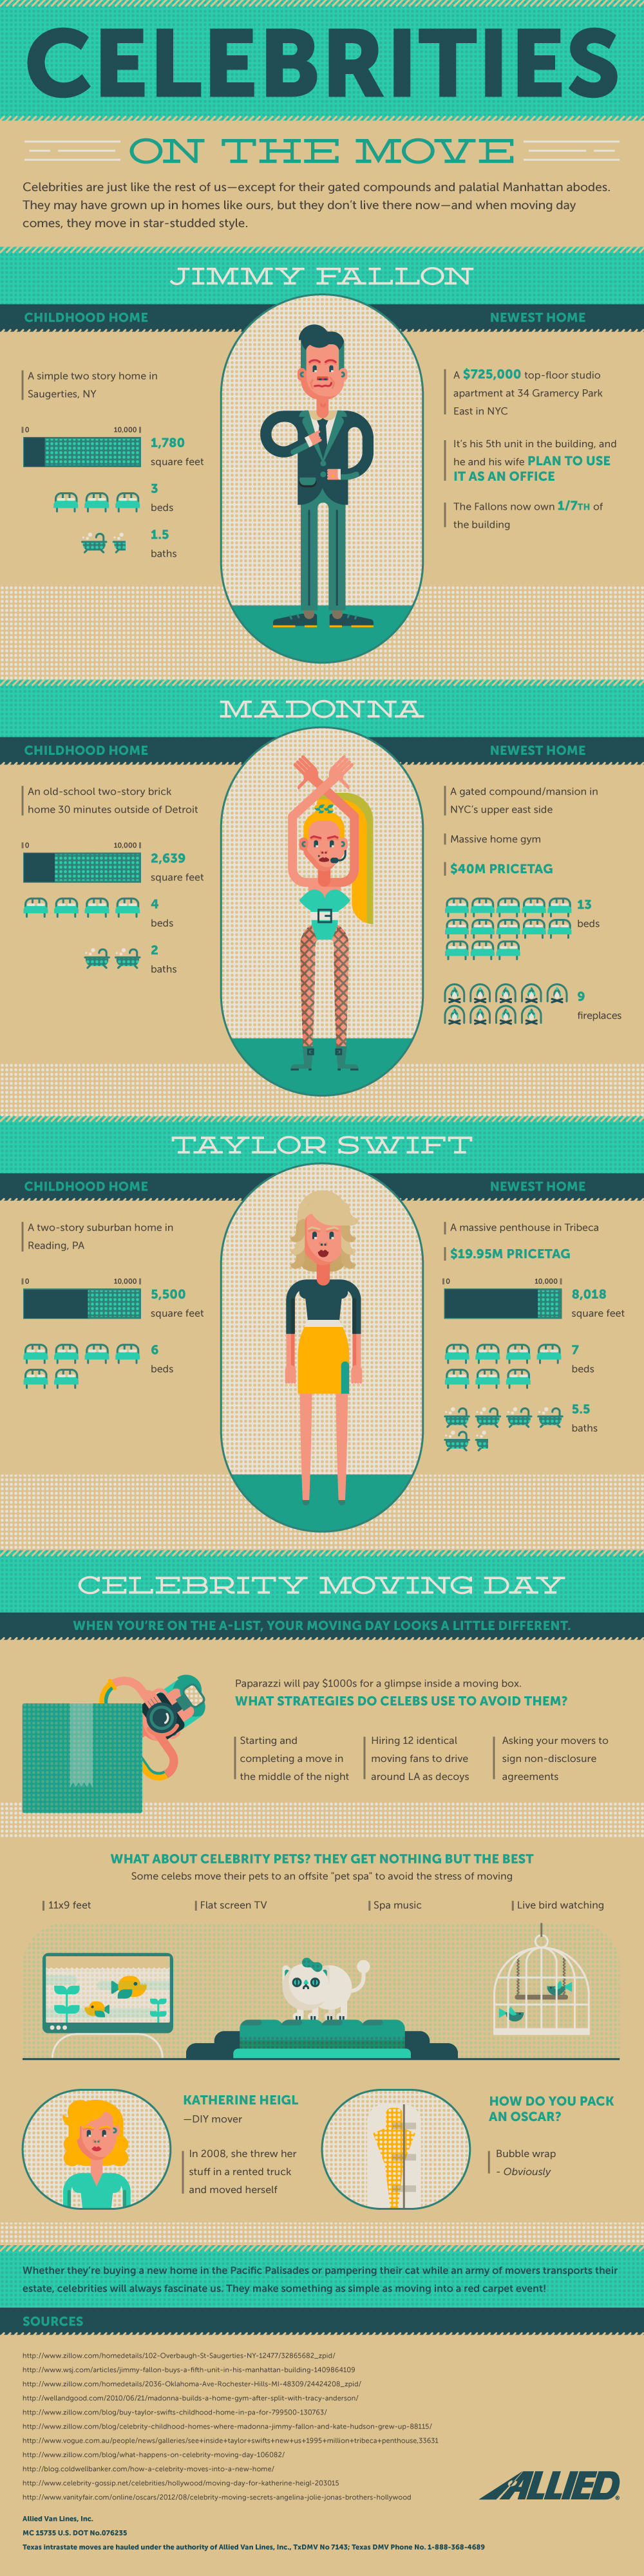 celebrities on the move